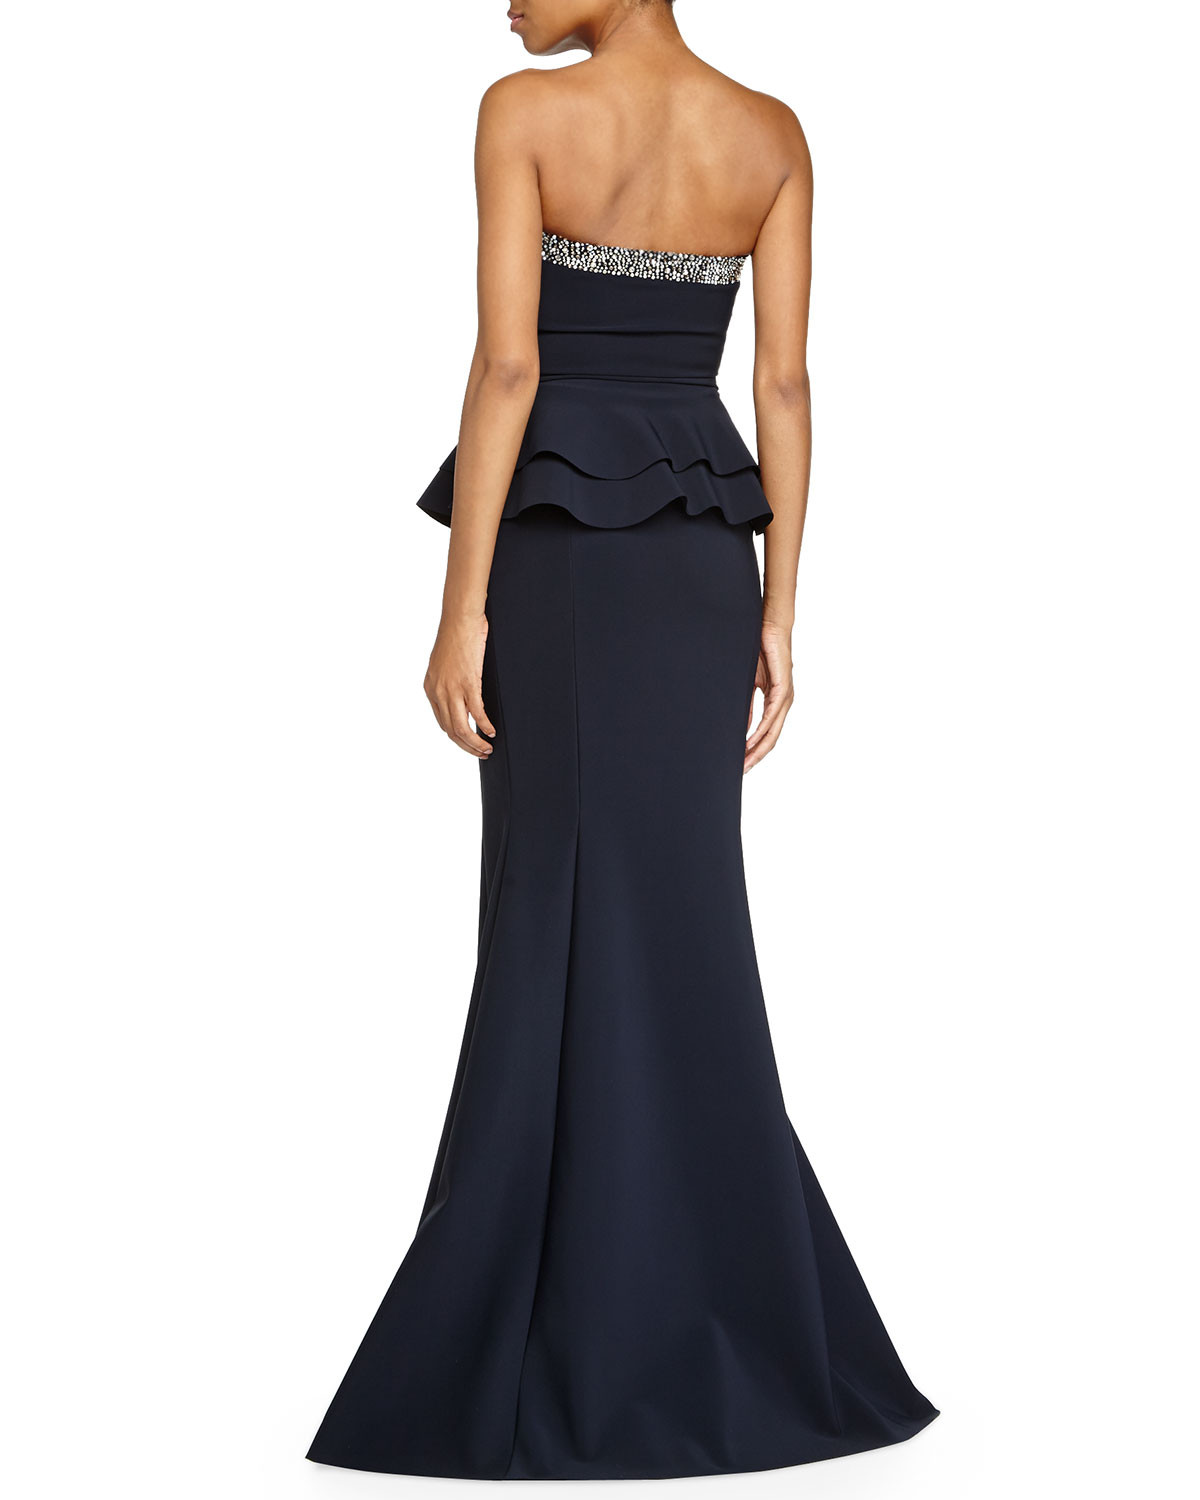 Chiara Boni The Most Popular Dress In America: La Petite Robe Di Chiara Boni Mebony Mermaid Peplum Gown